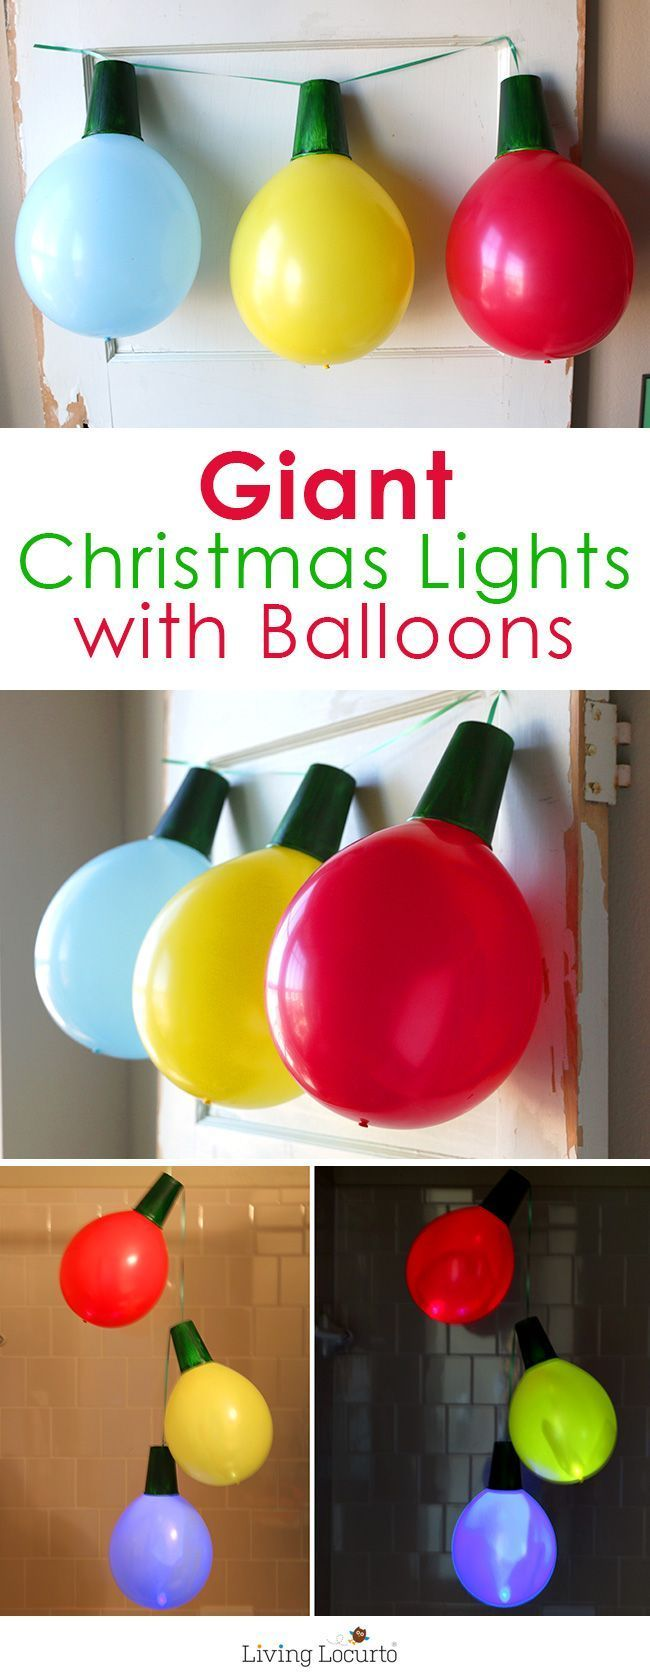 Whether hosting a holiday party, Tacky Christmas party or just want to go BIG… these Giant Balloon Christmas Lights and Ornaments are perfect decorations! #foxchristmas